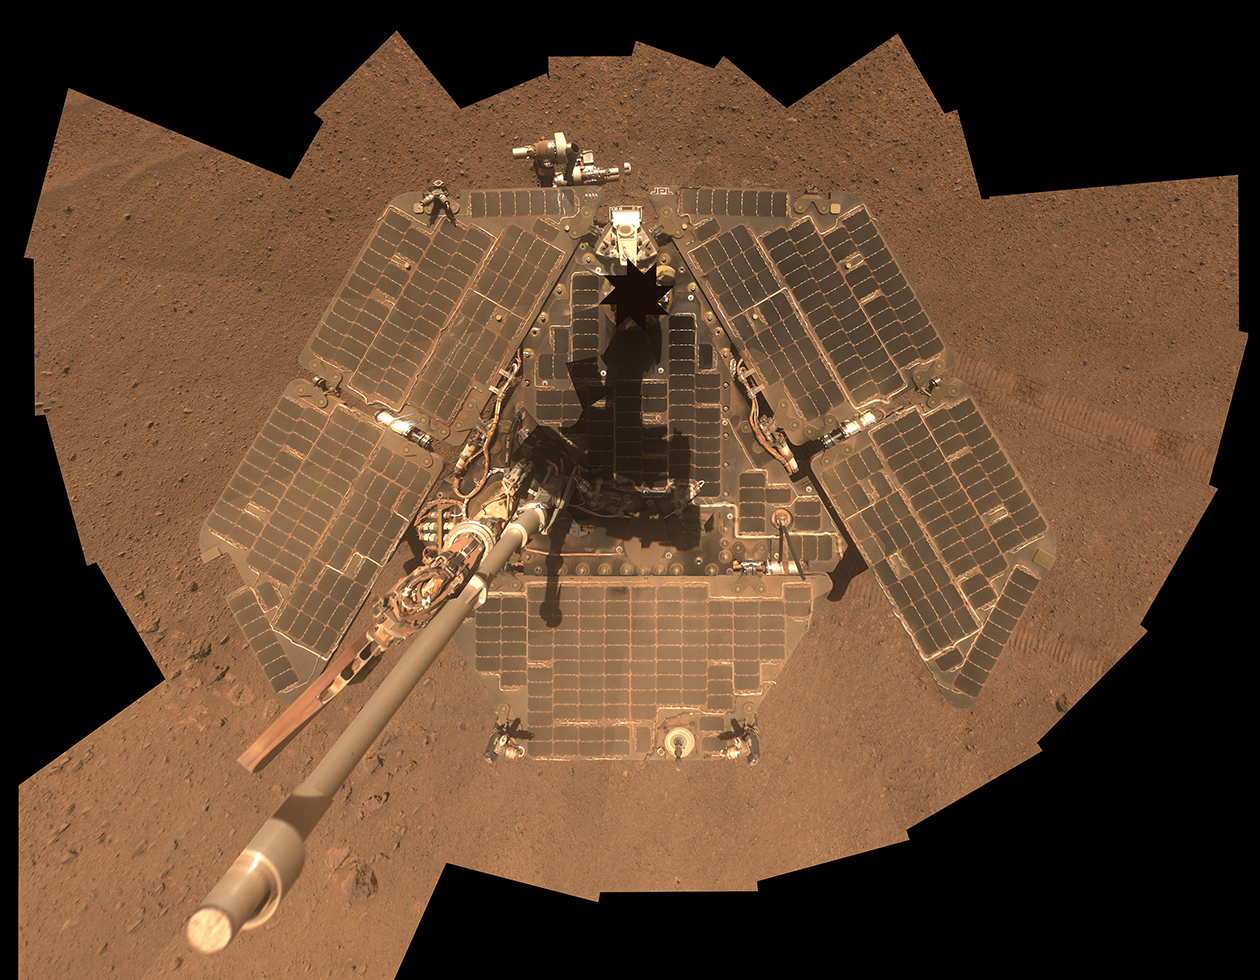 Dusty Rover Selfie after